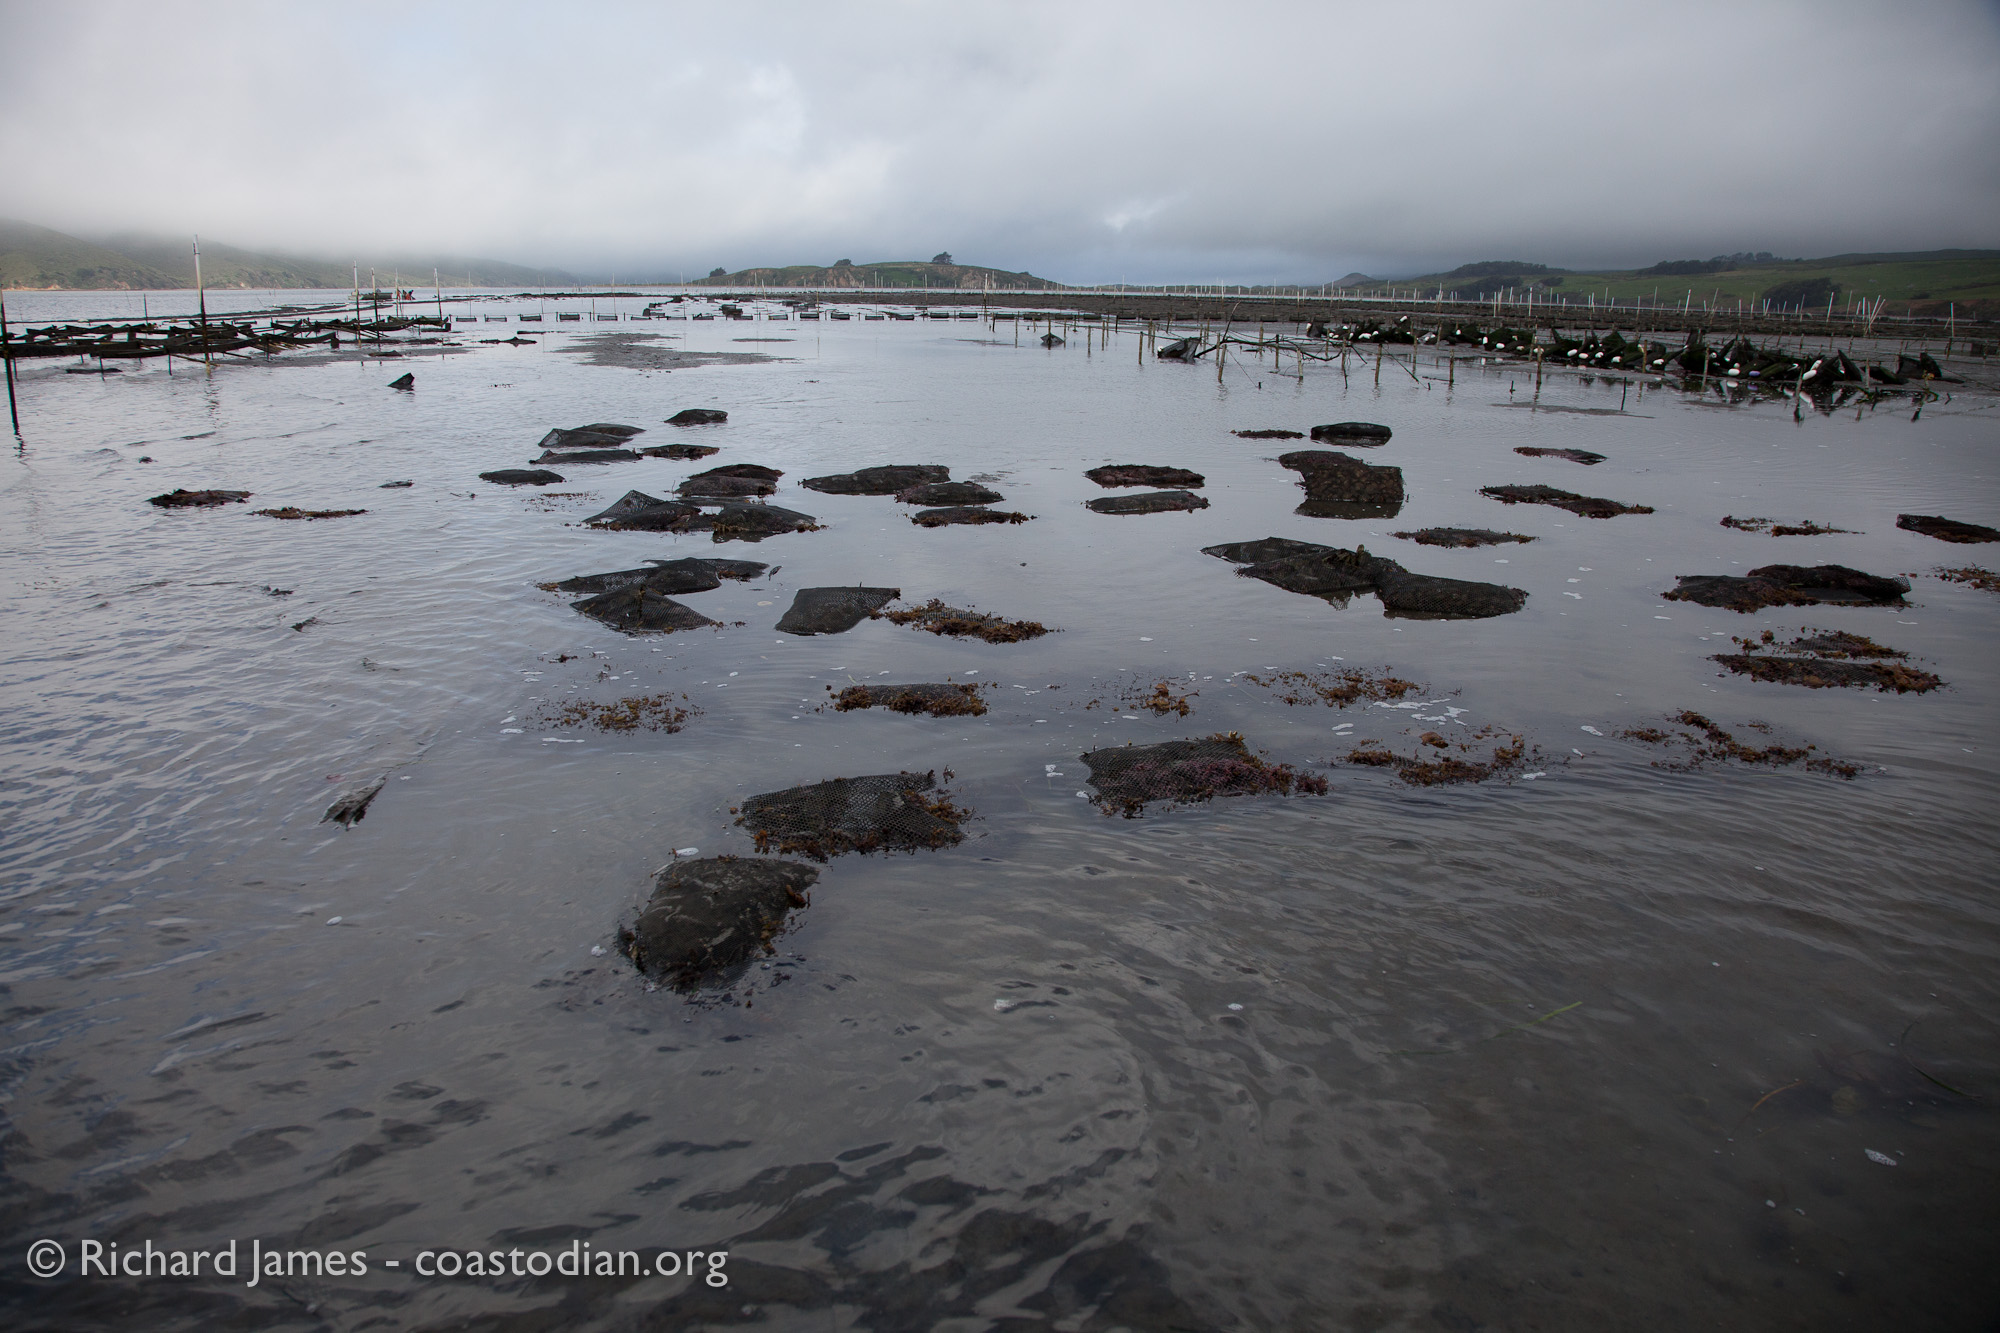 ©Richard James - coastodian.org Hog Island Oysters grow-out bags on lease M-430-10 on 22 March, 2015